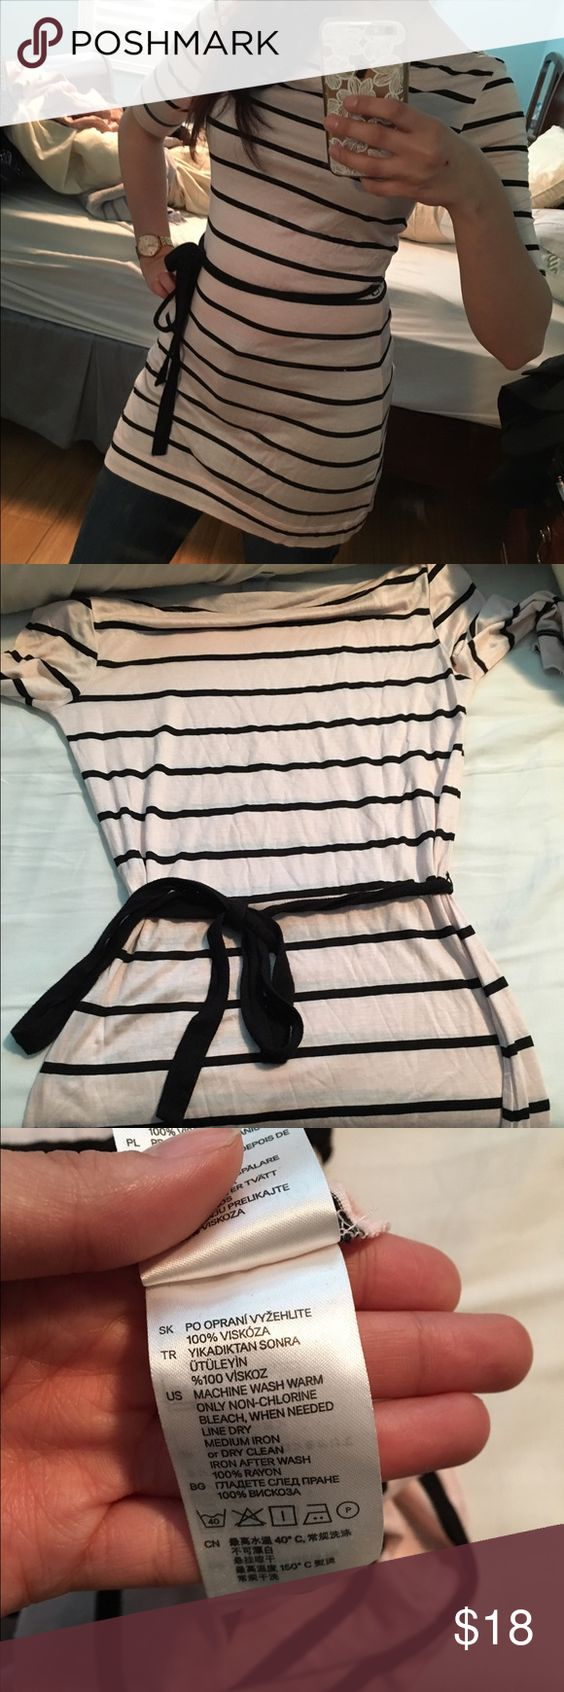 H&M pink and black striped tunic New without tags.  It's a really beautiful tunic with almost a sheen to the fabric that is not too visible in photos. I never wore it because I felt the color wasn't super flattering on me, but I could see it being perfect on someone else. Comes with a sash around the waist; body-hugging design with minimal stretch. H&M Tops Tunics